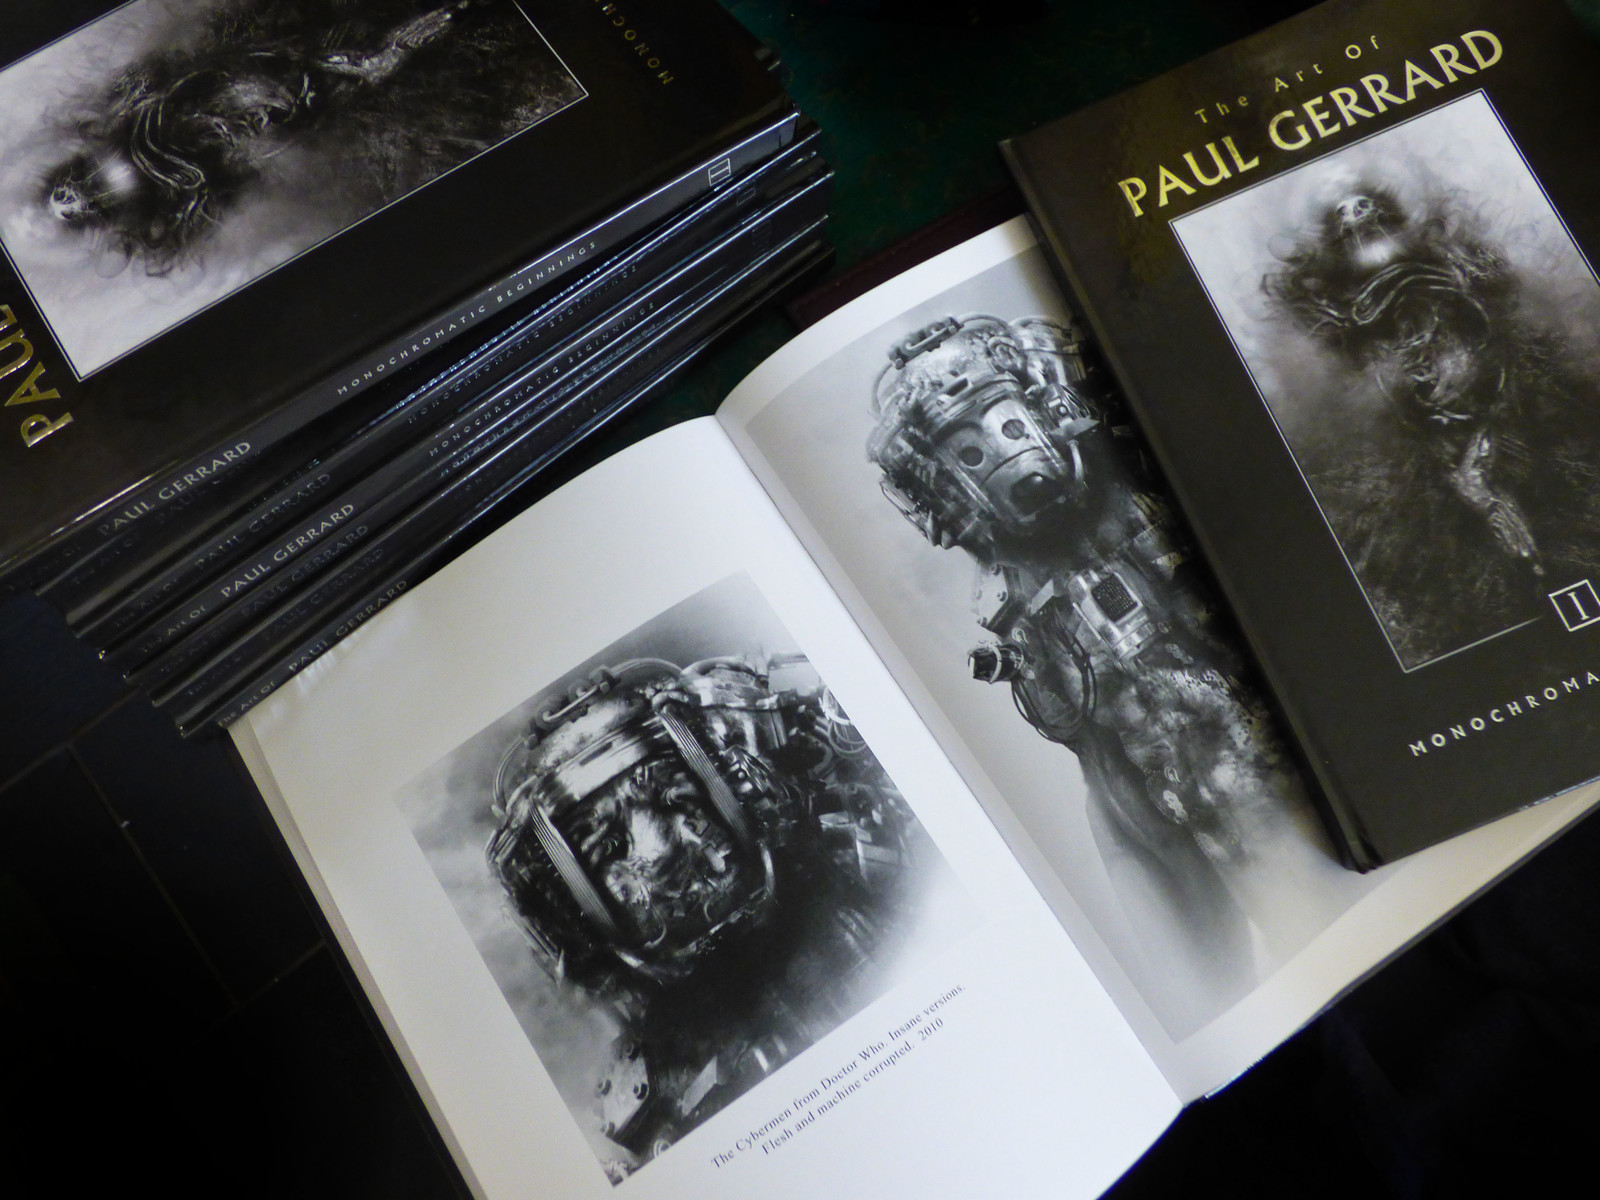 Art of PAUL GERRARD Vol 1 ON SALE NOW